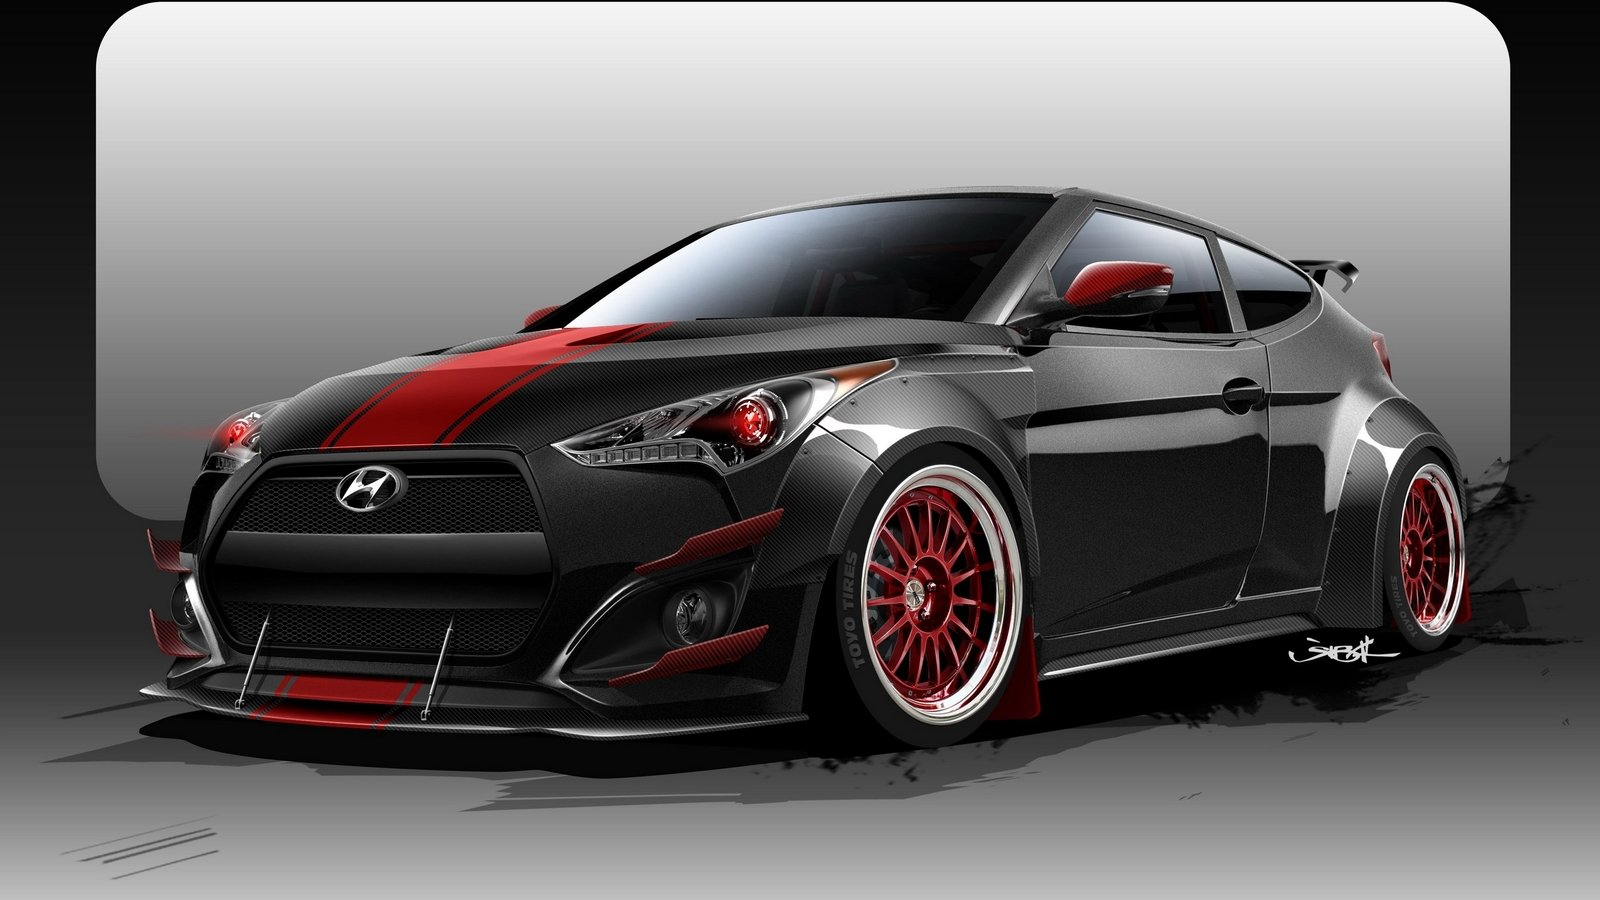 2015 hyundai veloster turbo by blood type racing review top speed. Black Bedroom Furniture Sets. Home Design Ideas